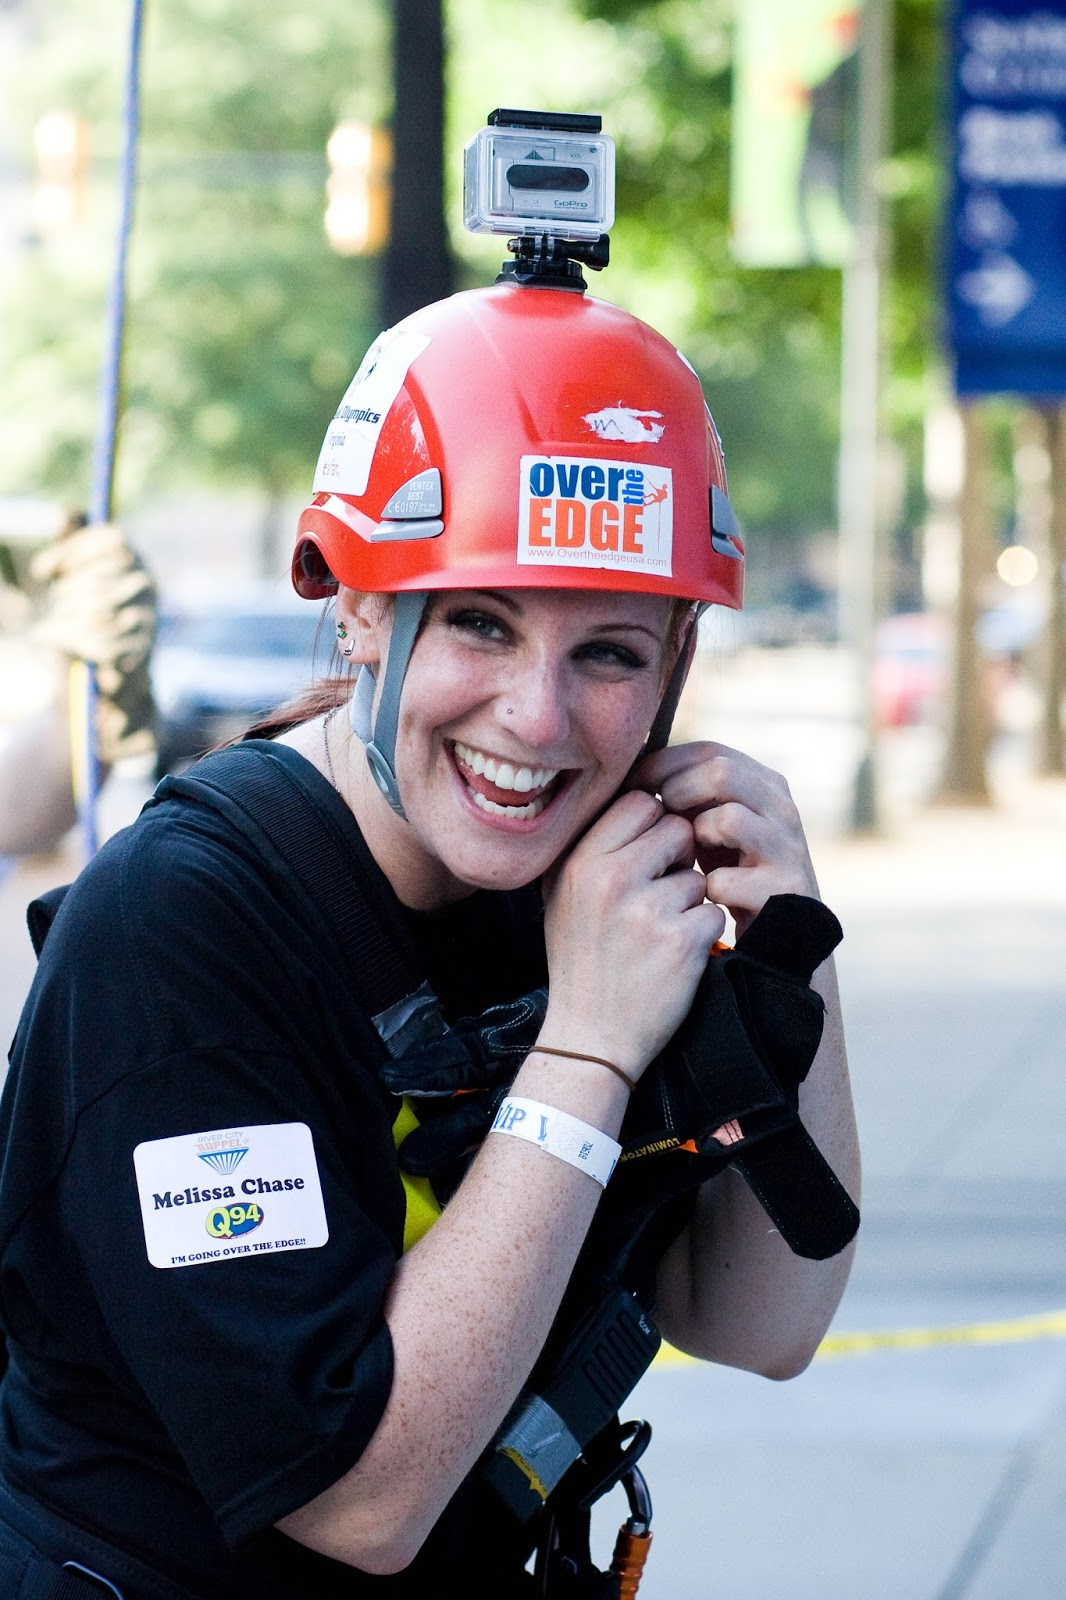 Individual participants have a fundraising commitment of $2,500 and will have the unforgettable experience of rappelling down a high-rise building.